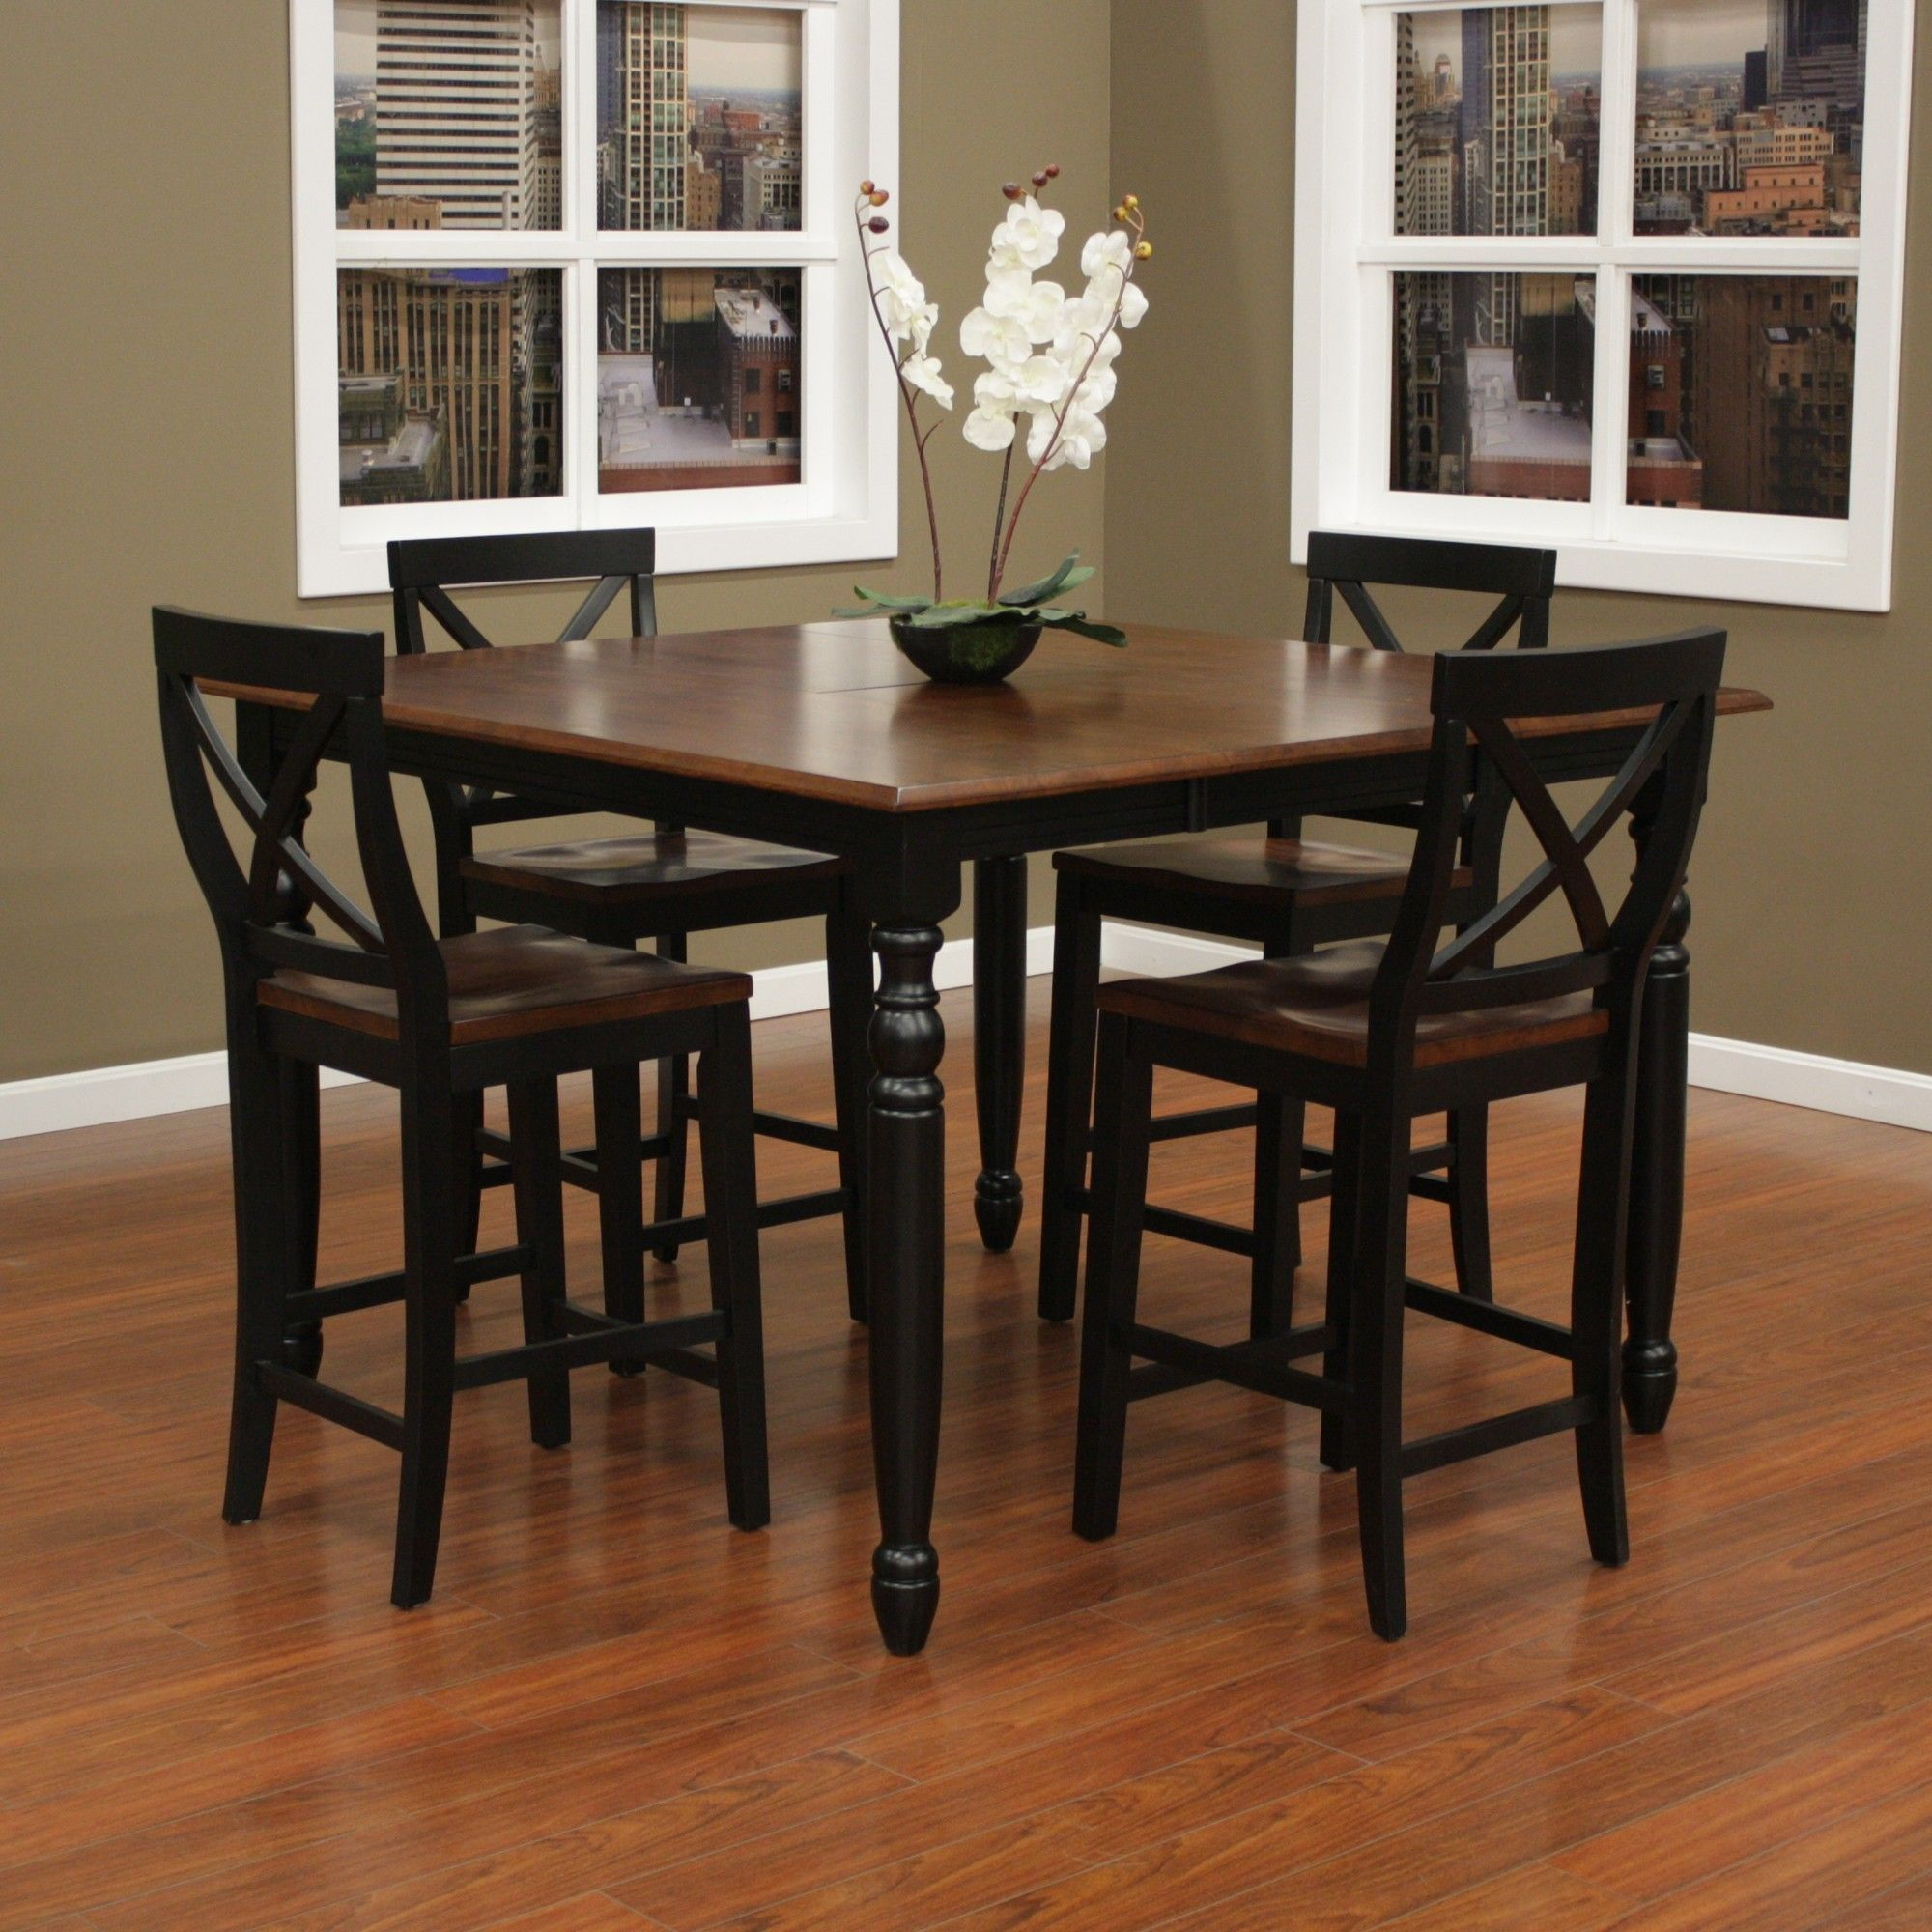 Deer Lodge 5 Piece Counter Height Dining Set